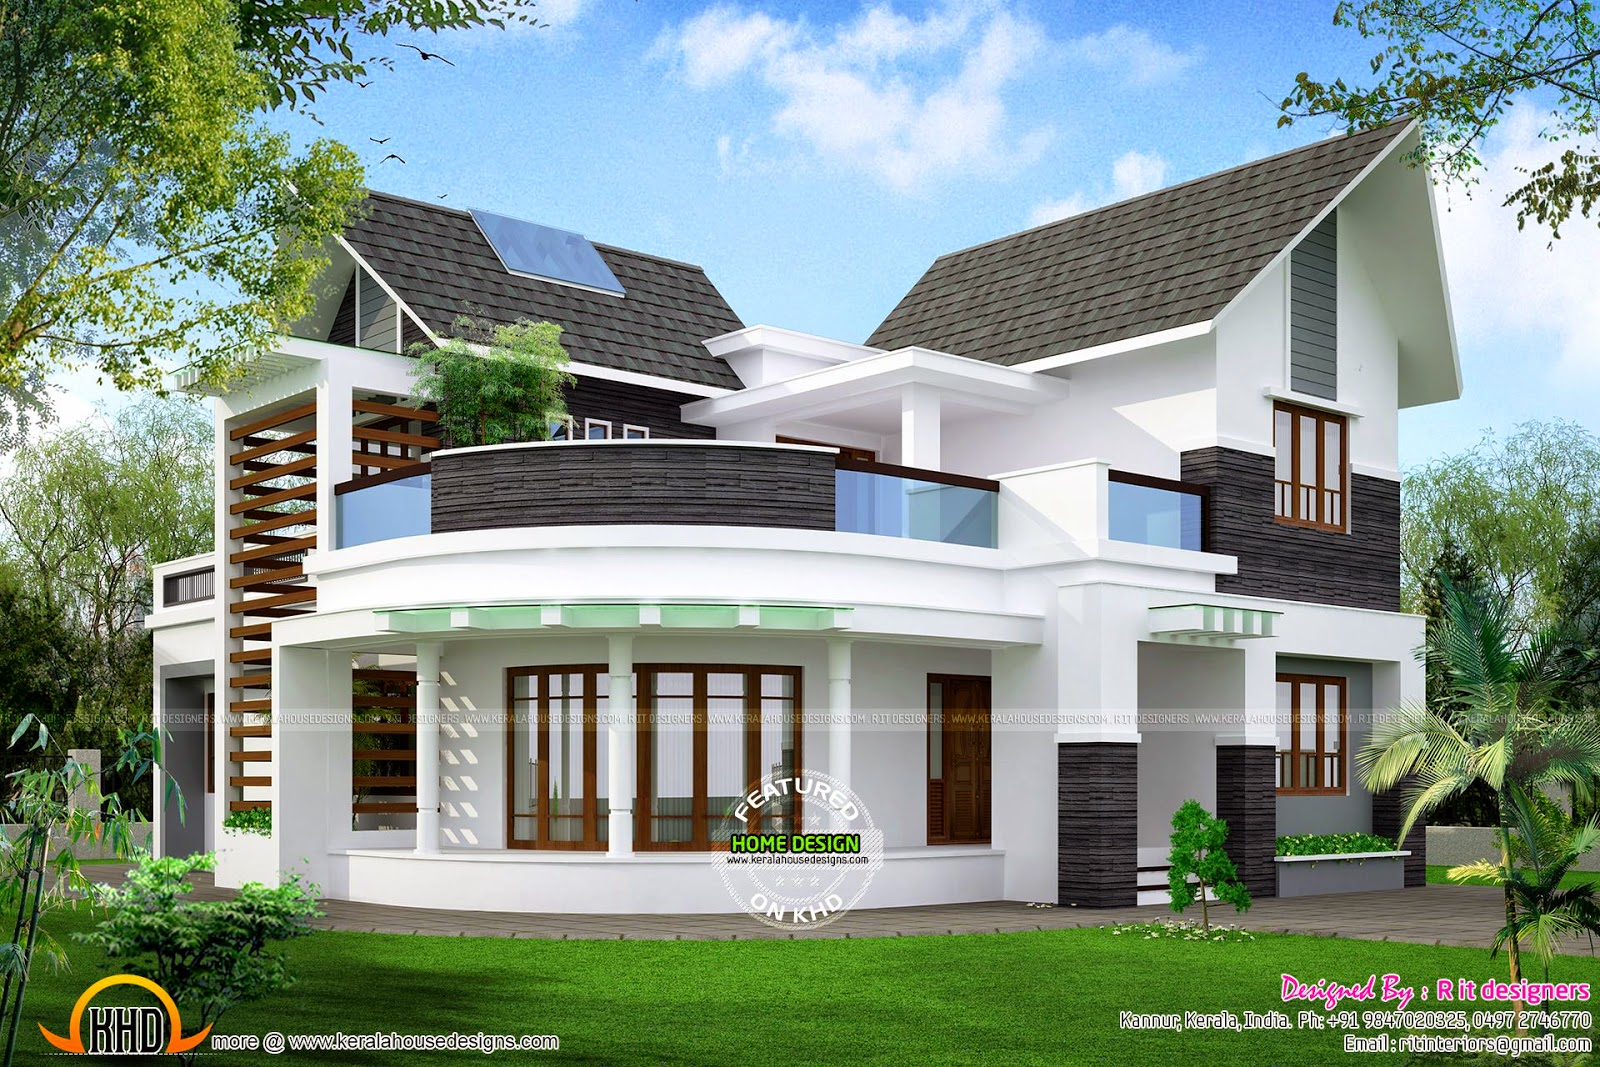 Bath House Plans Beautiful Unique House Kerala Home Design And Floor Plans